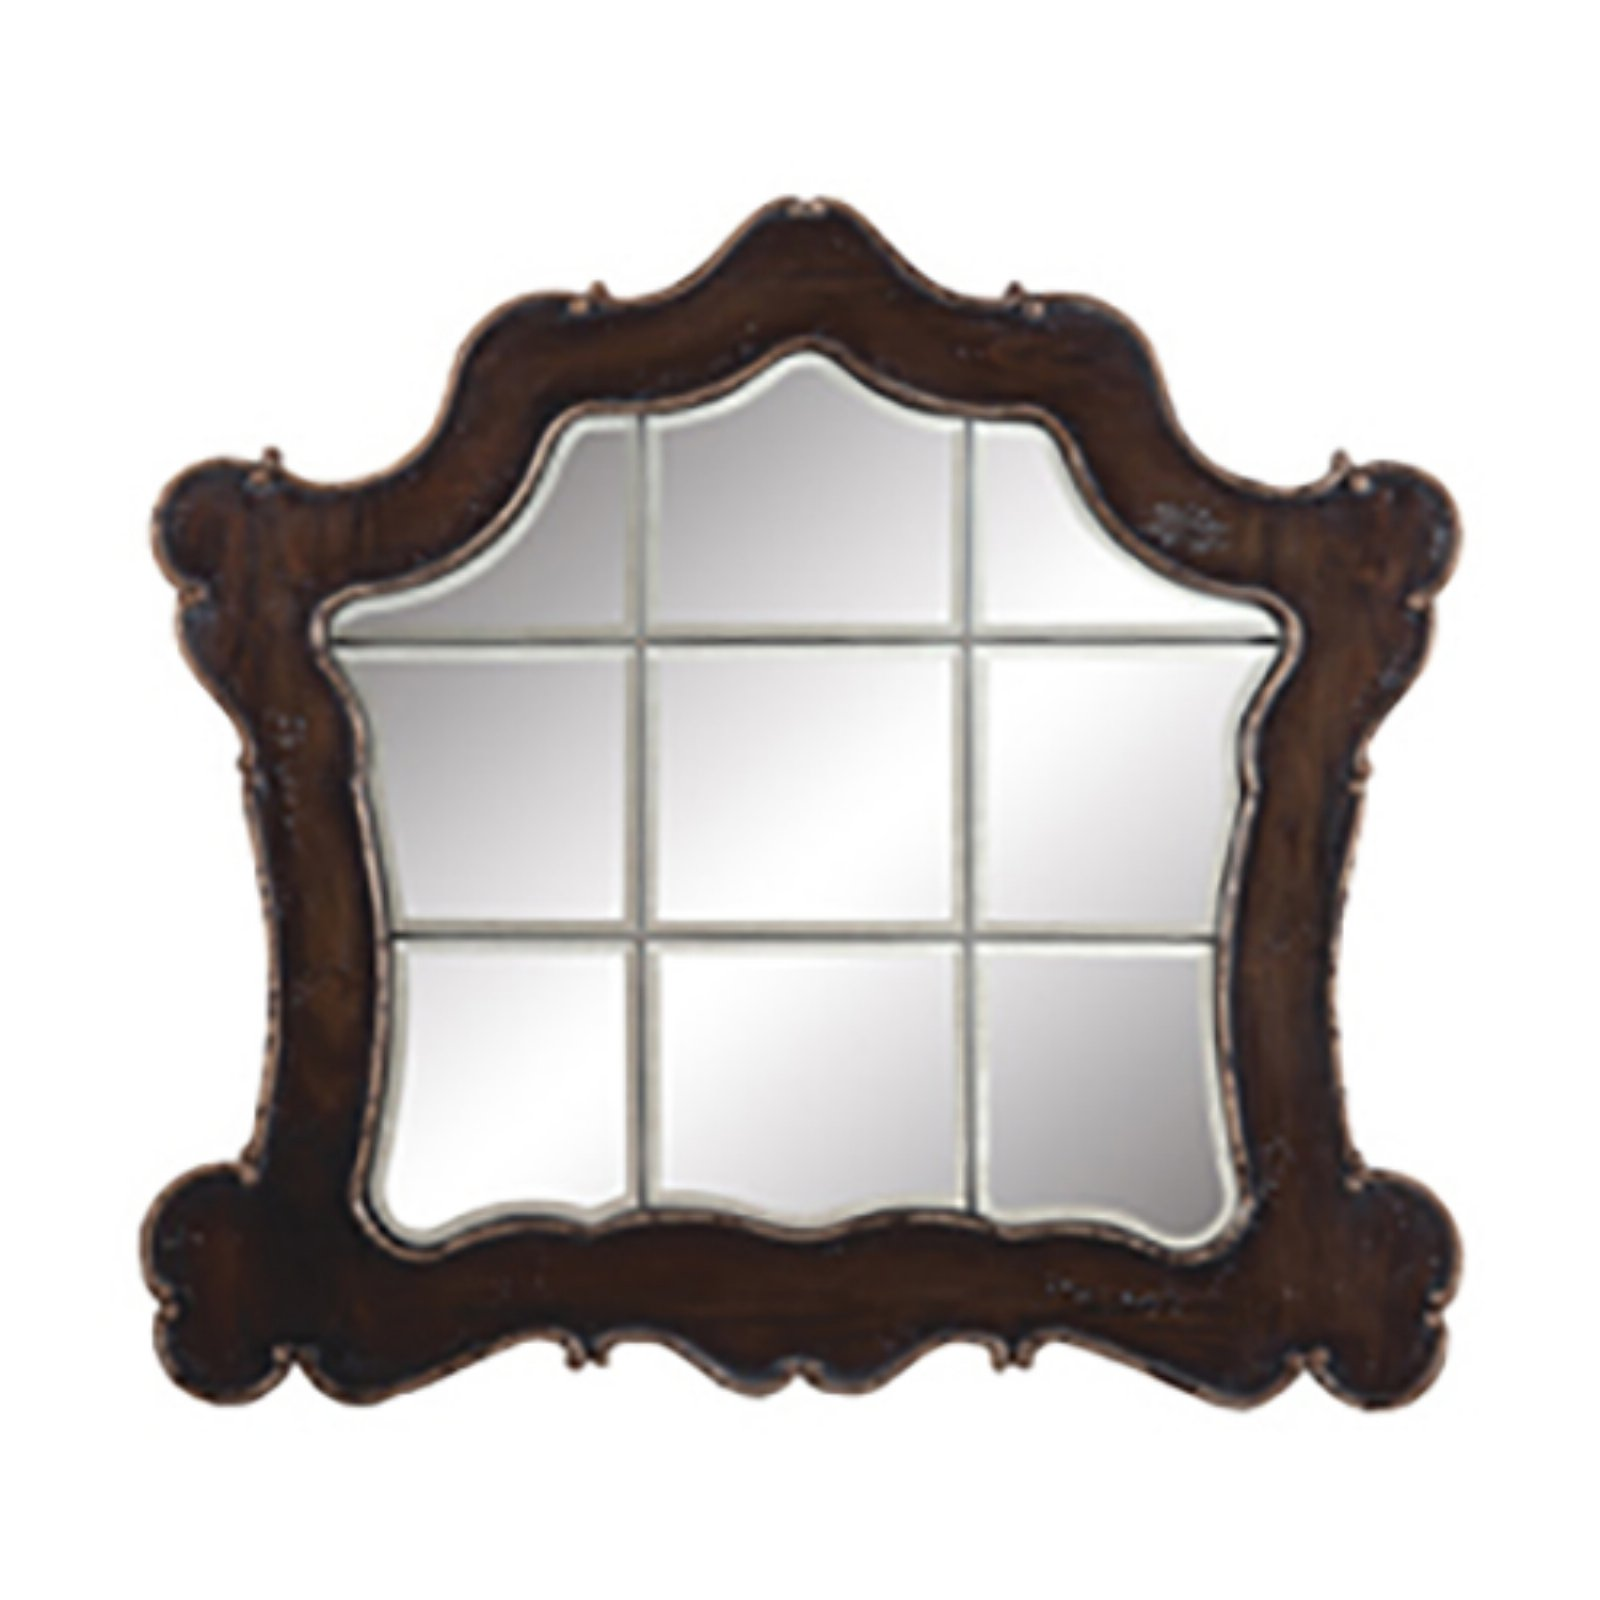 Guild Master Ornate Heritage Beveled Mirror - 52W x 48H in.